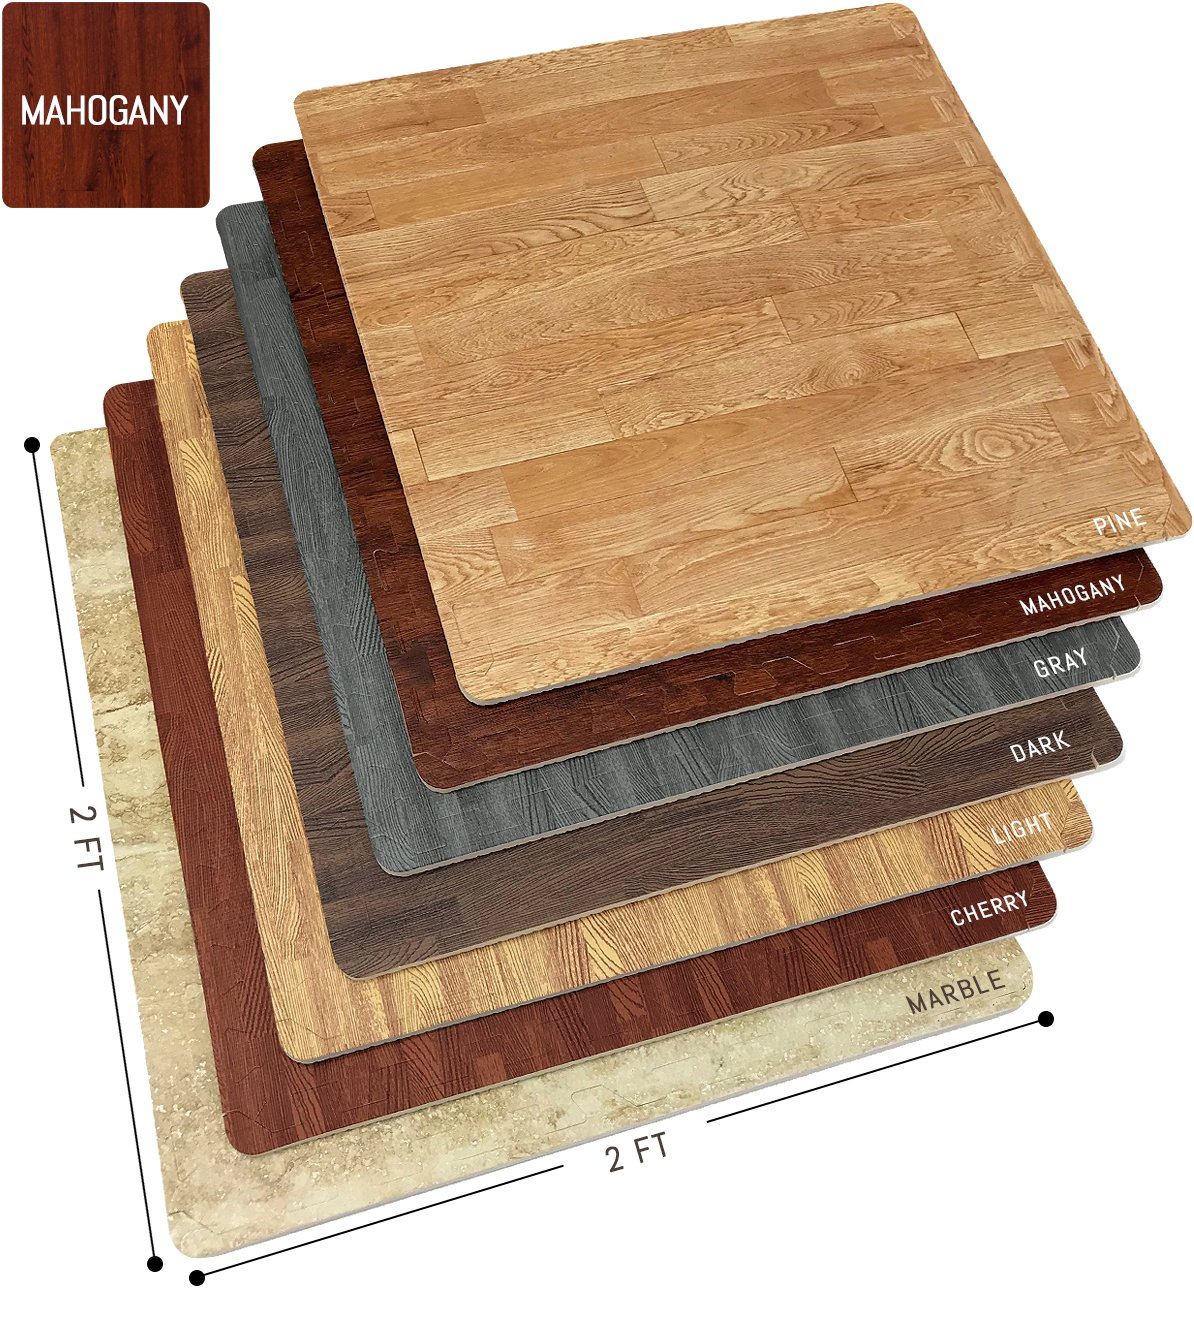 Sorbus Wood Grain Floor Mats Foam Interlocking Mats Tile 3/8-Inch Thick Flooring Wood Mat Tiles Borders - Home Office Playroom Basement Trade Show